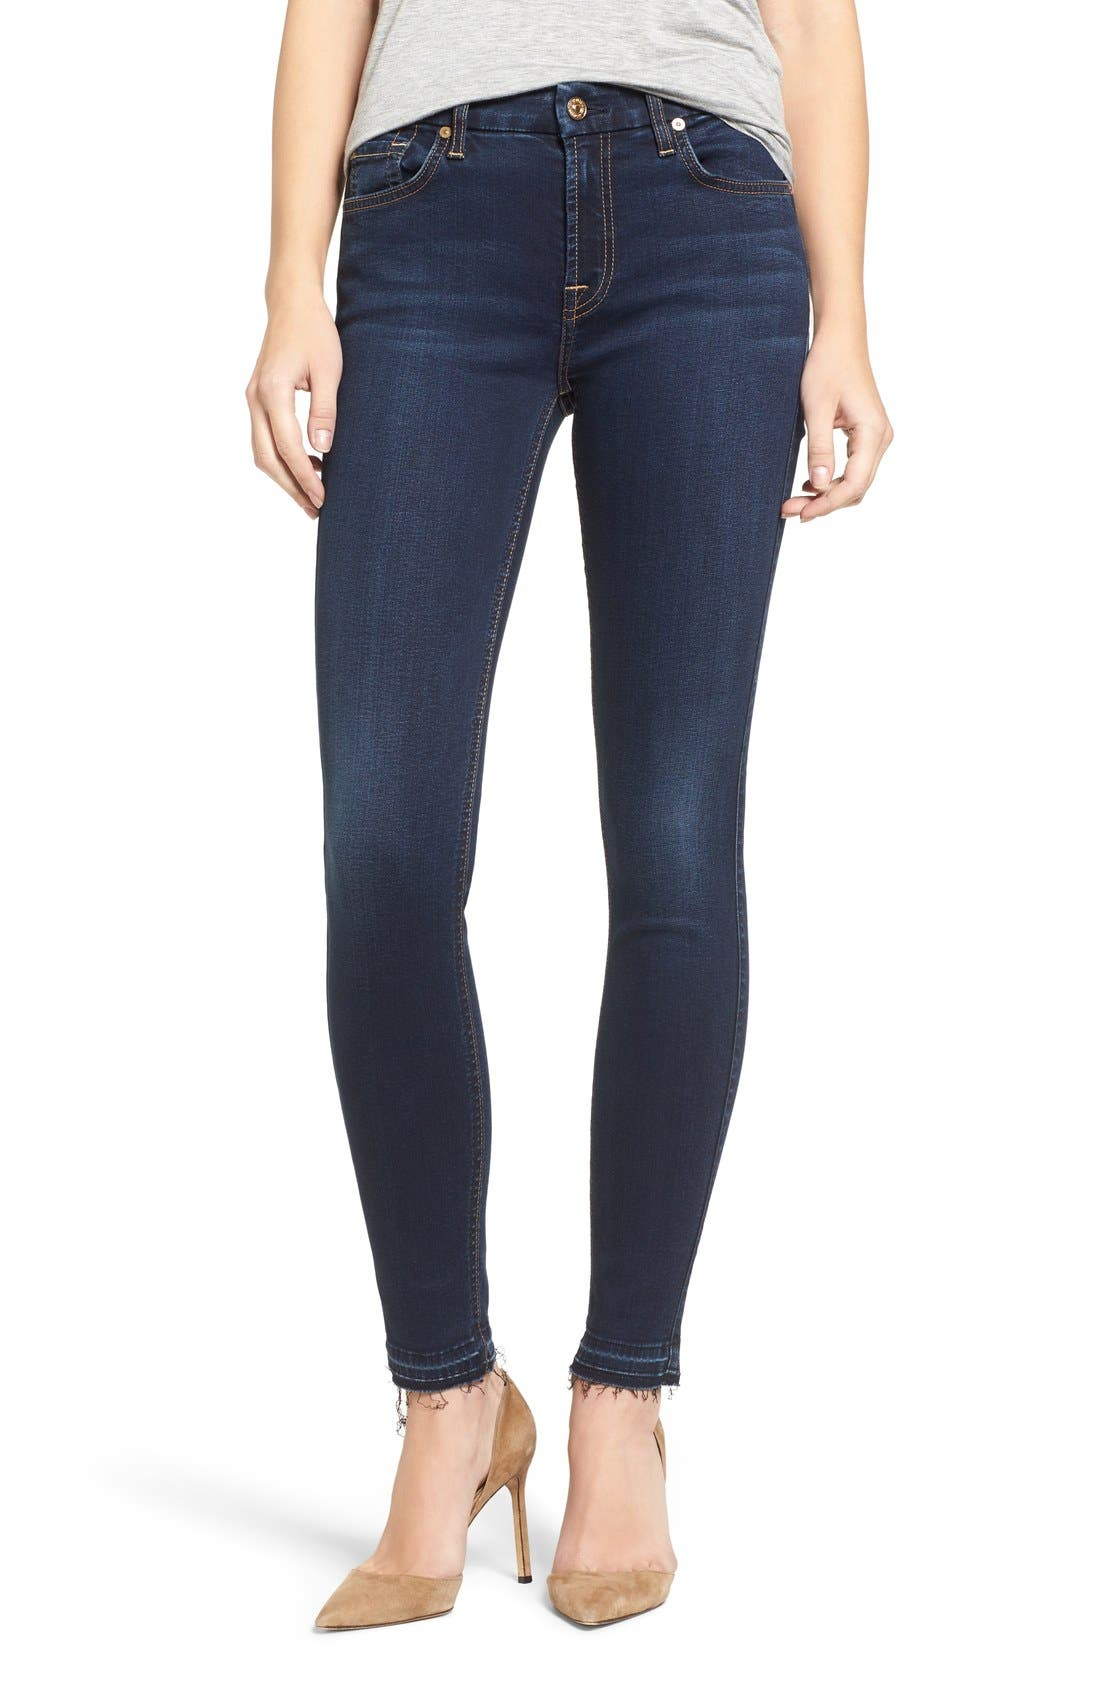 b(air) Ankle Skinny Jeans,                             Main thumbnail 1, color,                             400